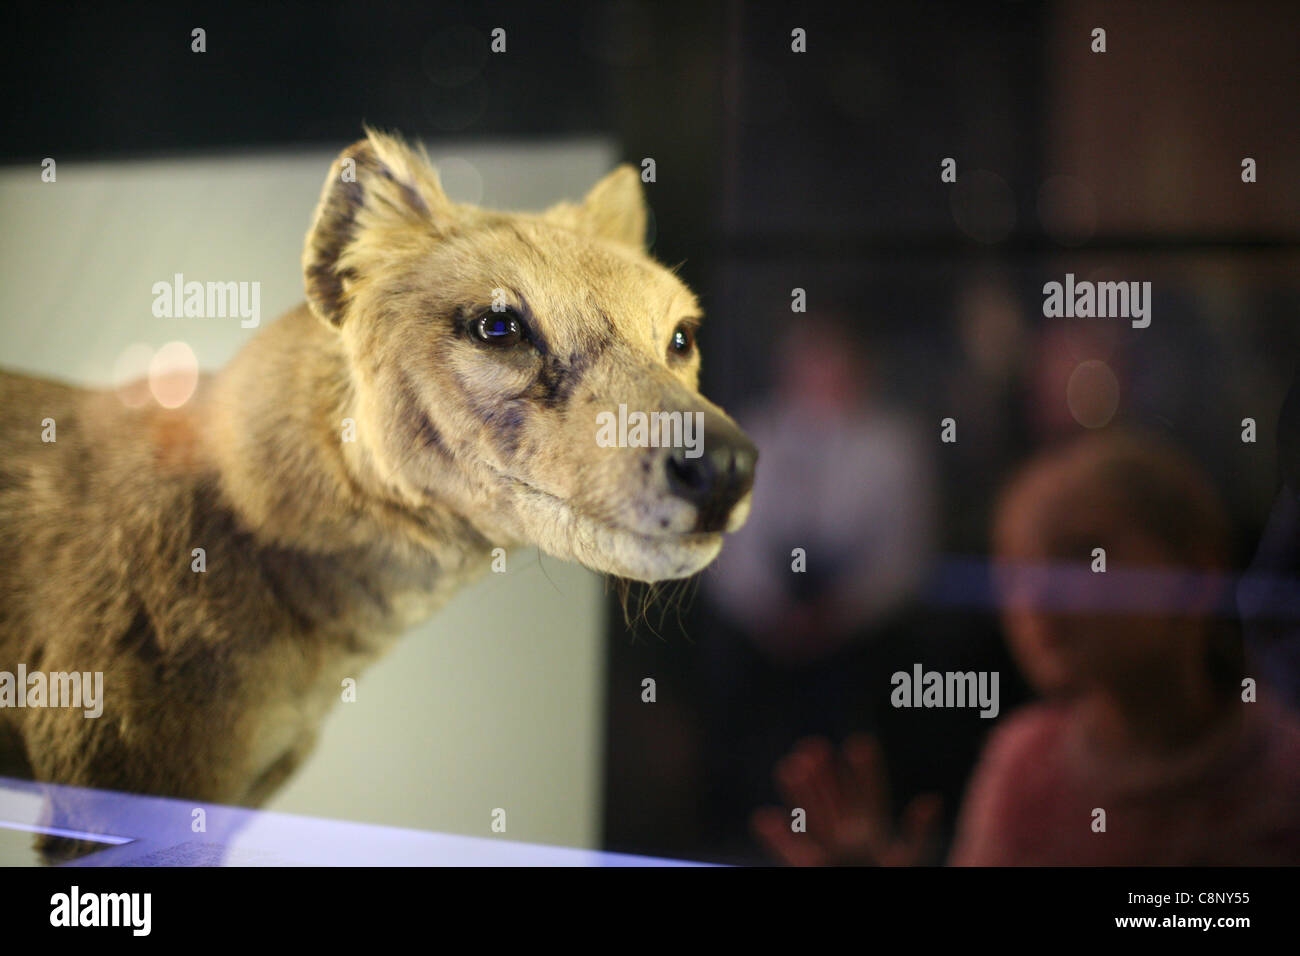 Stuffed Tasmanian Tiger Thylacinus Cynocephalus At The Humboldt